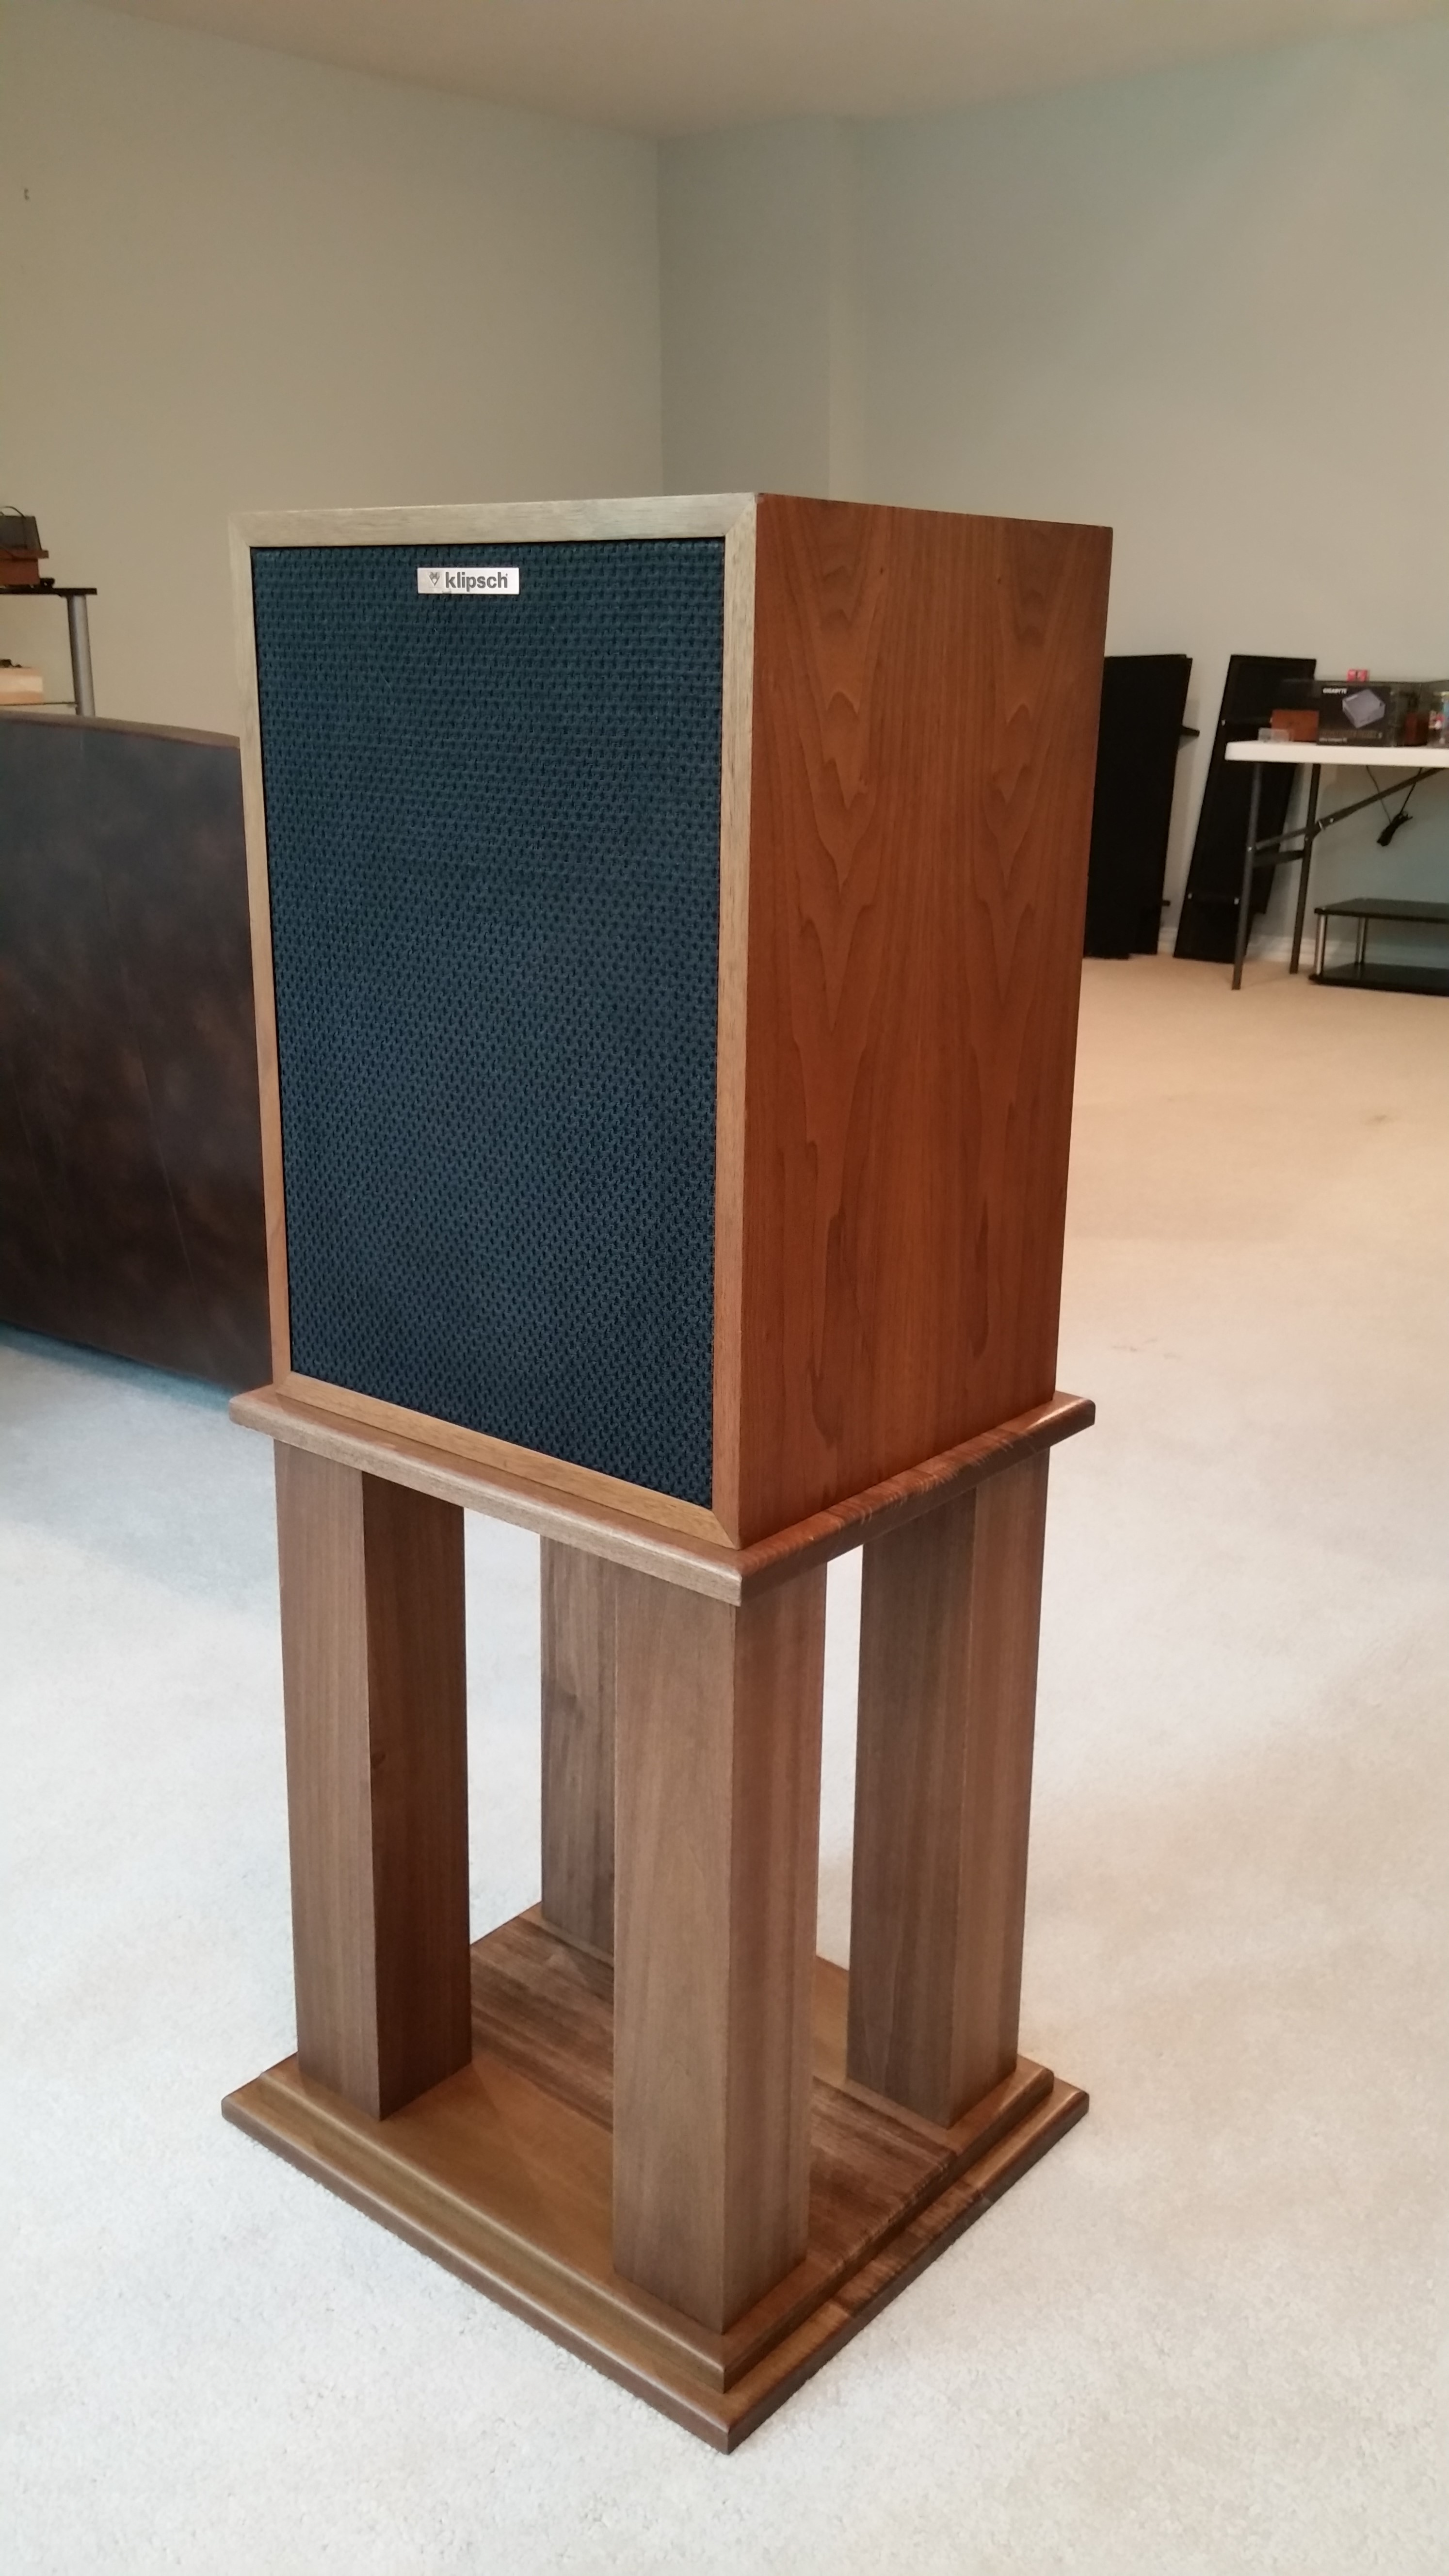 Custom Heresy Stands 2 Channel Home Audio The Klipsch